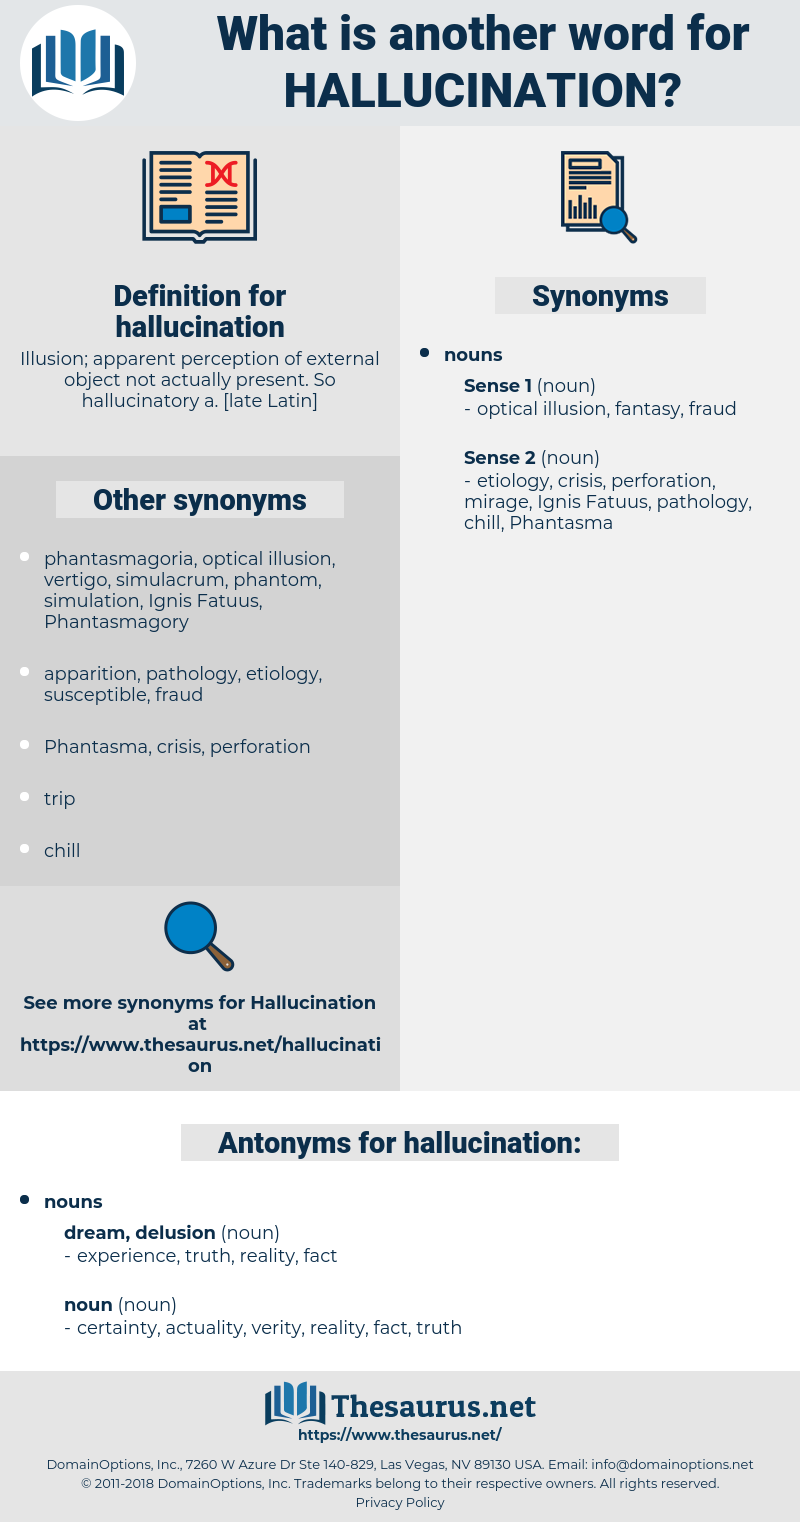 hallucination, synonym hallucination, another word for hallucination, words like hallucination, thesaurus hallucination